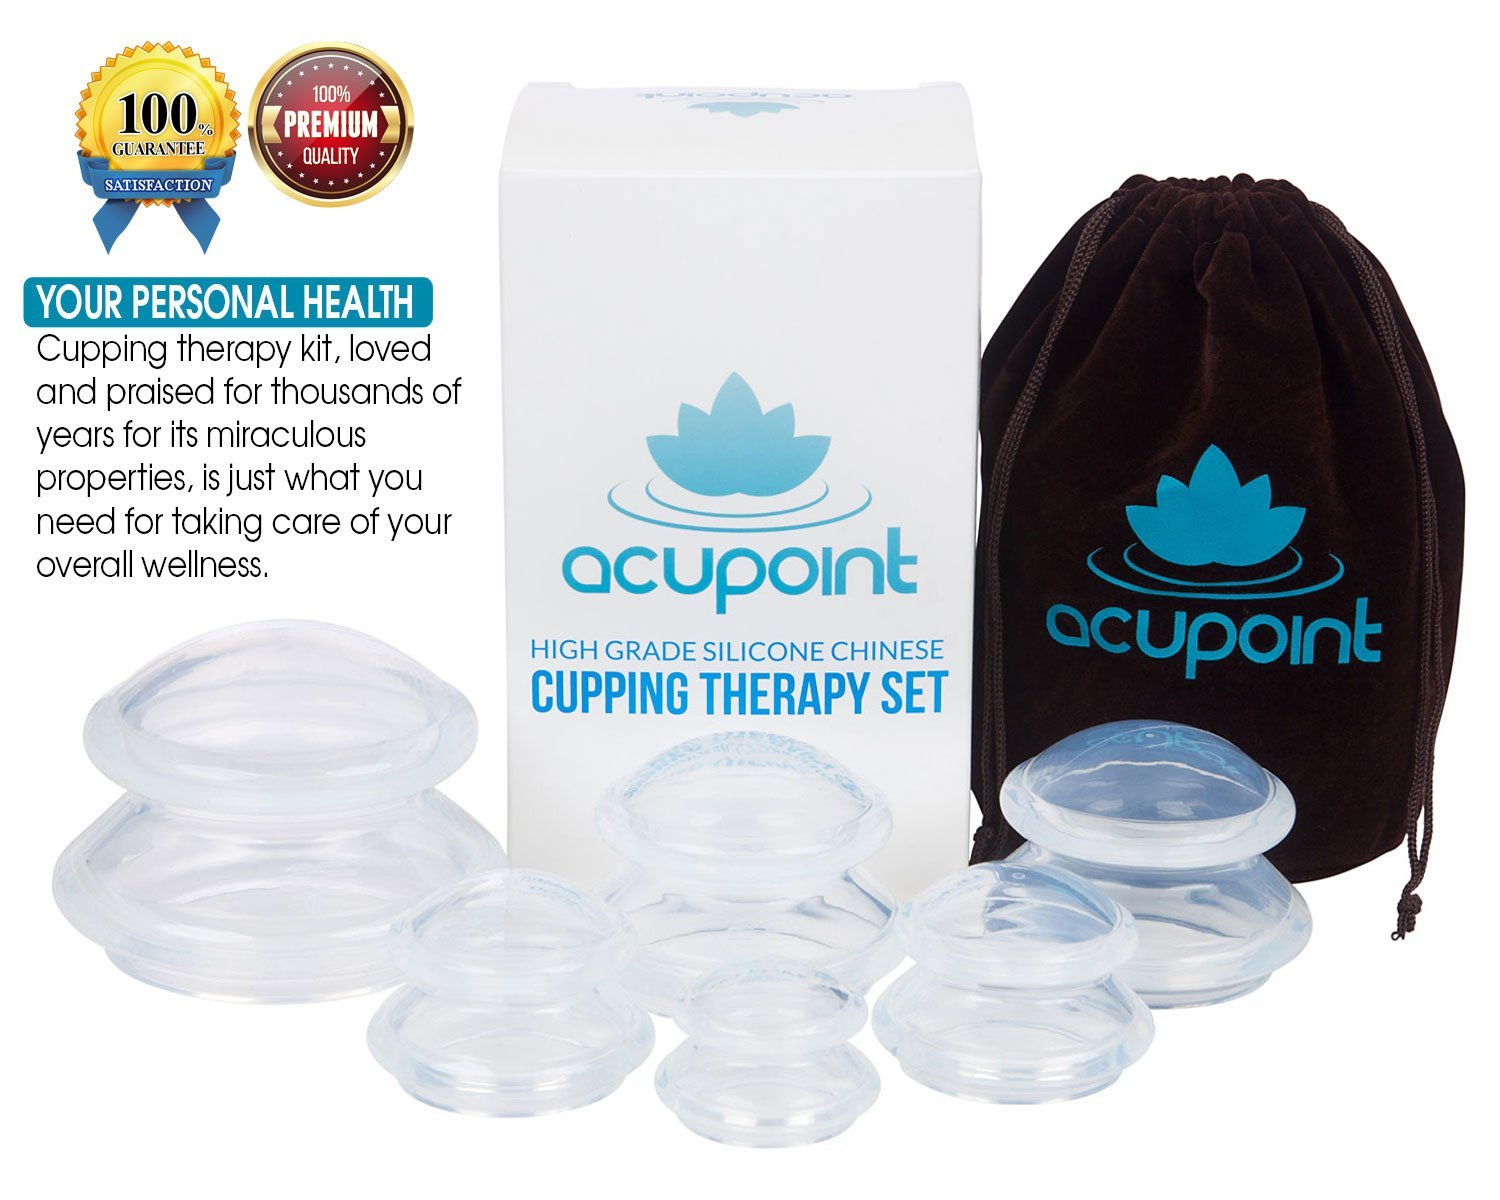 Health & Beauty Hansol Massage Cupping Set 10 Cups High Quality Relief Pain Vacuum Therapy Grade Products According To Quality